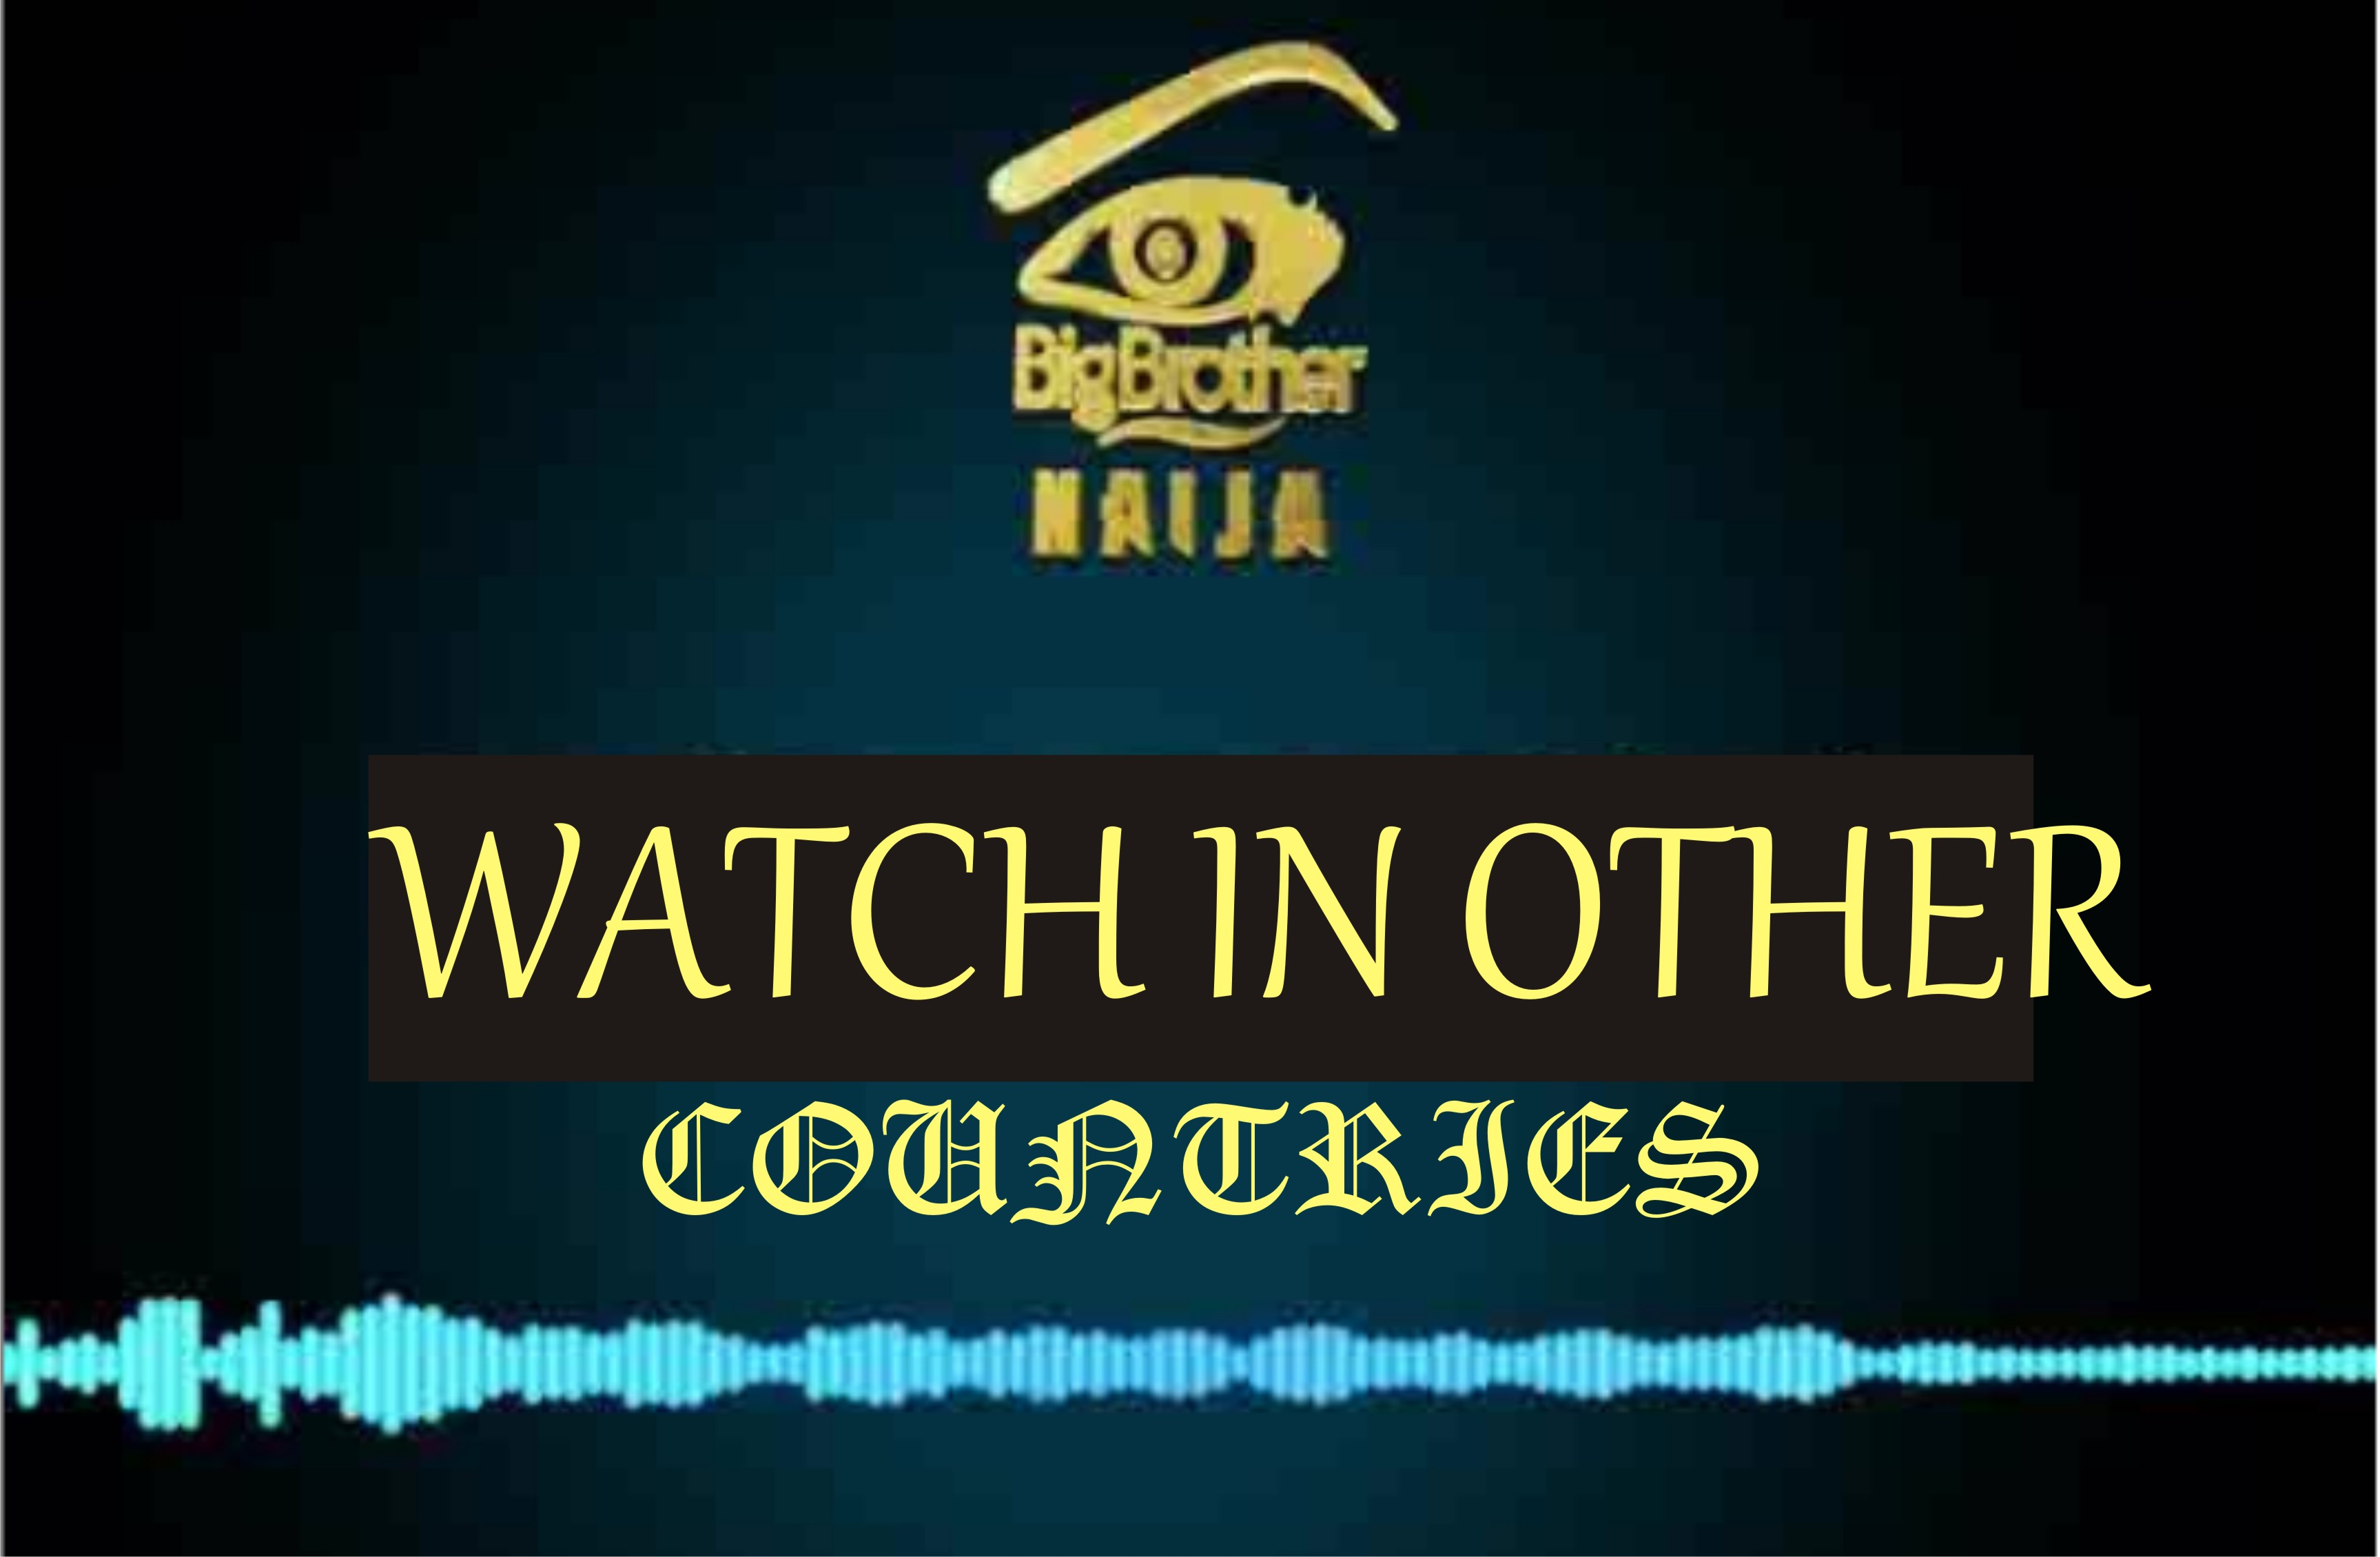 How to Watch Big Brother Nigeria 2019 in Ghana, South Africa, Zambia, Tanzania, Botswana, Uganda, etc